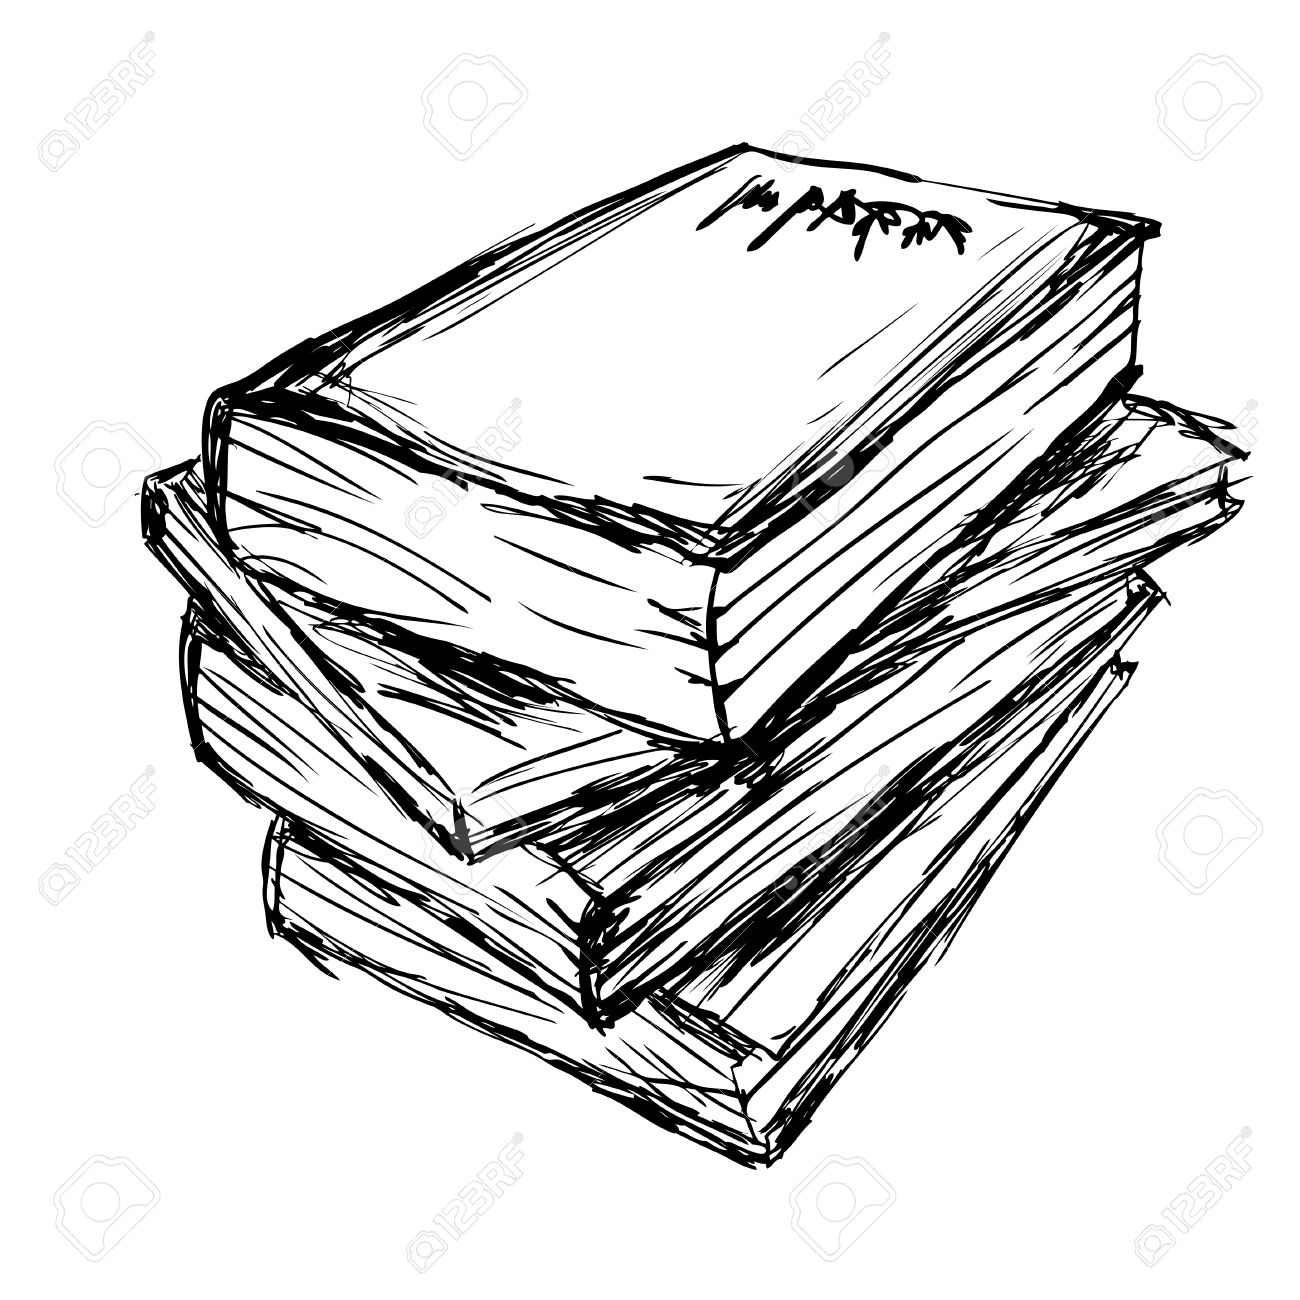 1300x1300 Vector Drawing A Pile Of Books Royalty Free Cliparts, Vectors,